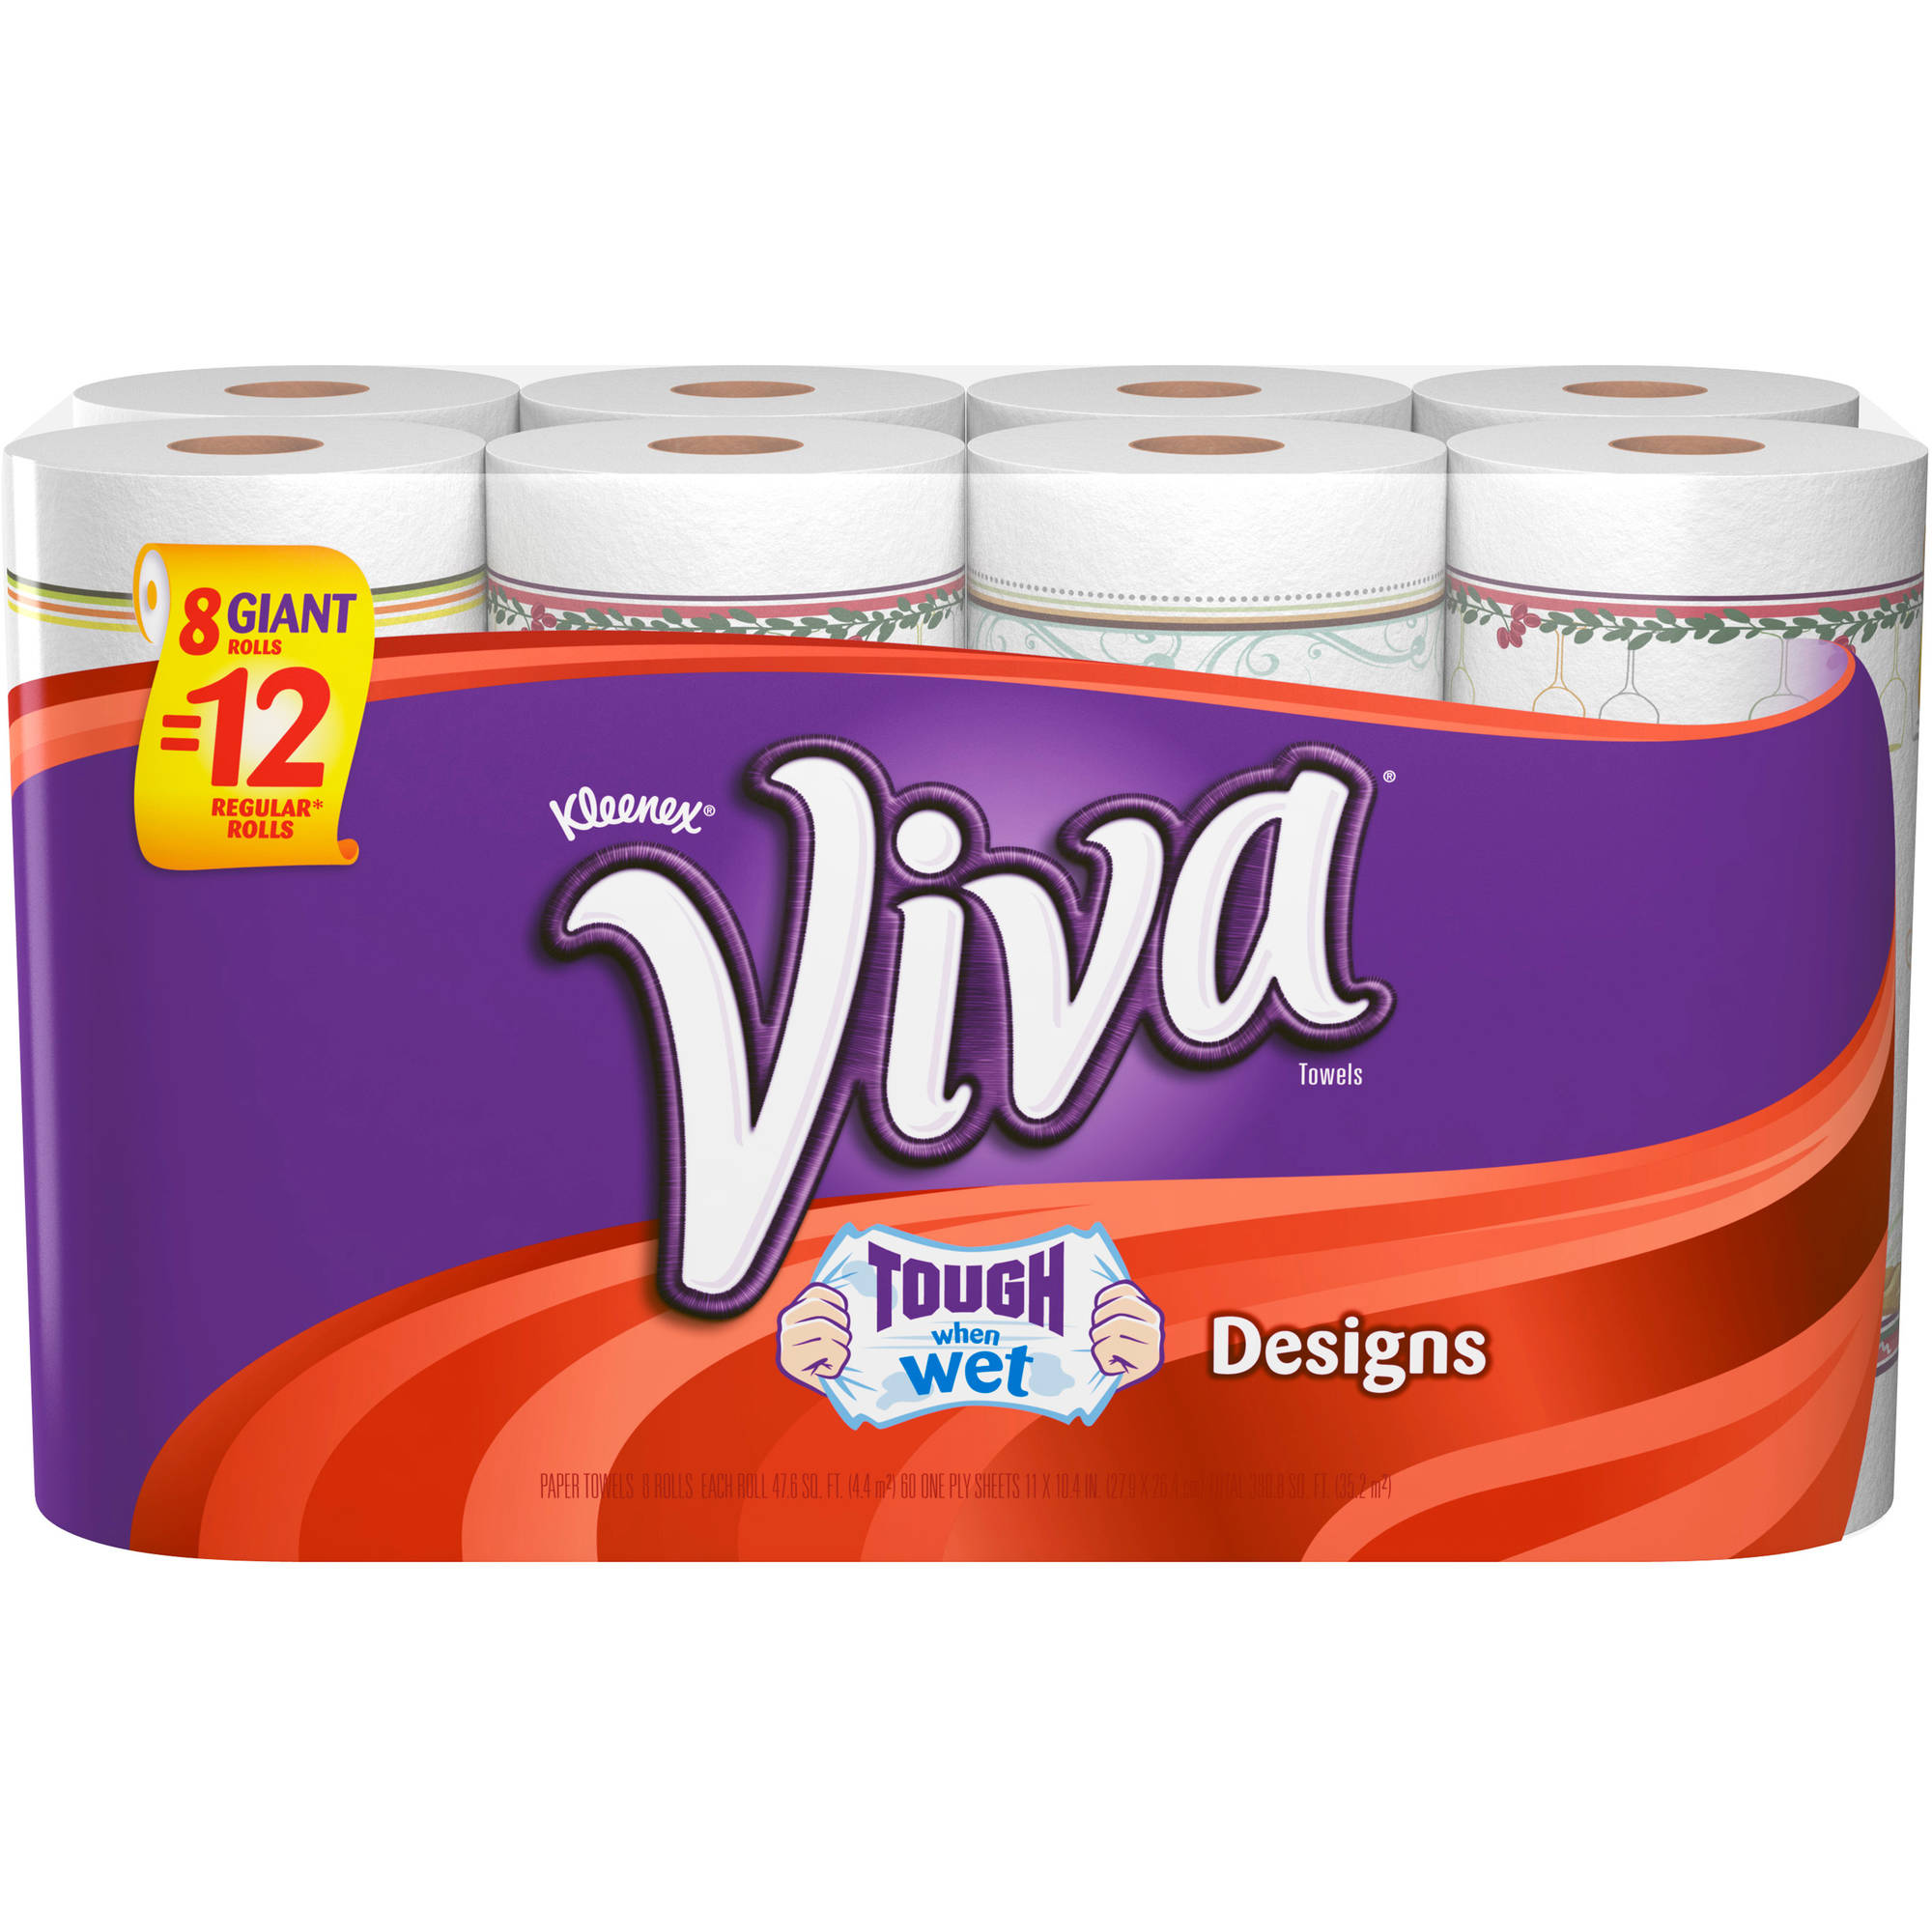 Viva Designs Giant Roll Paper Towels, 60 sheets, 8 count